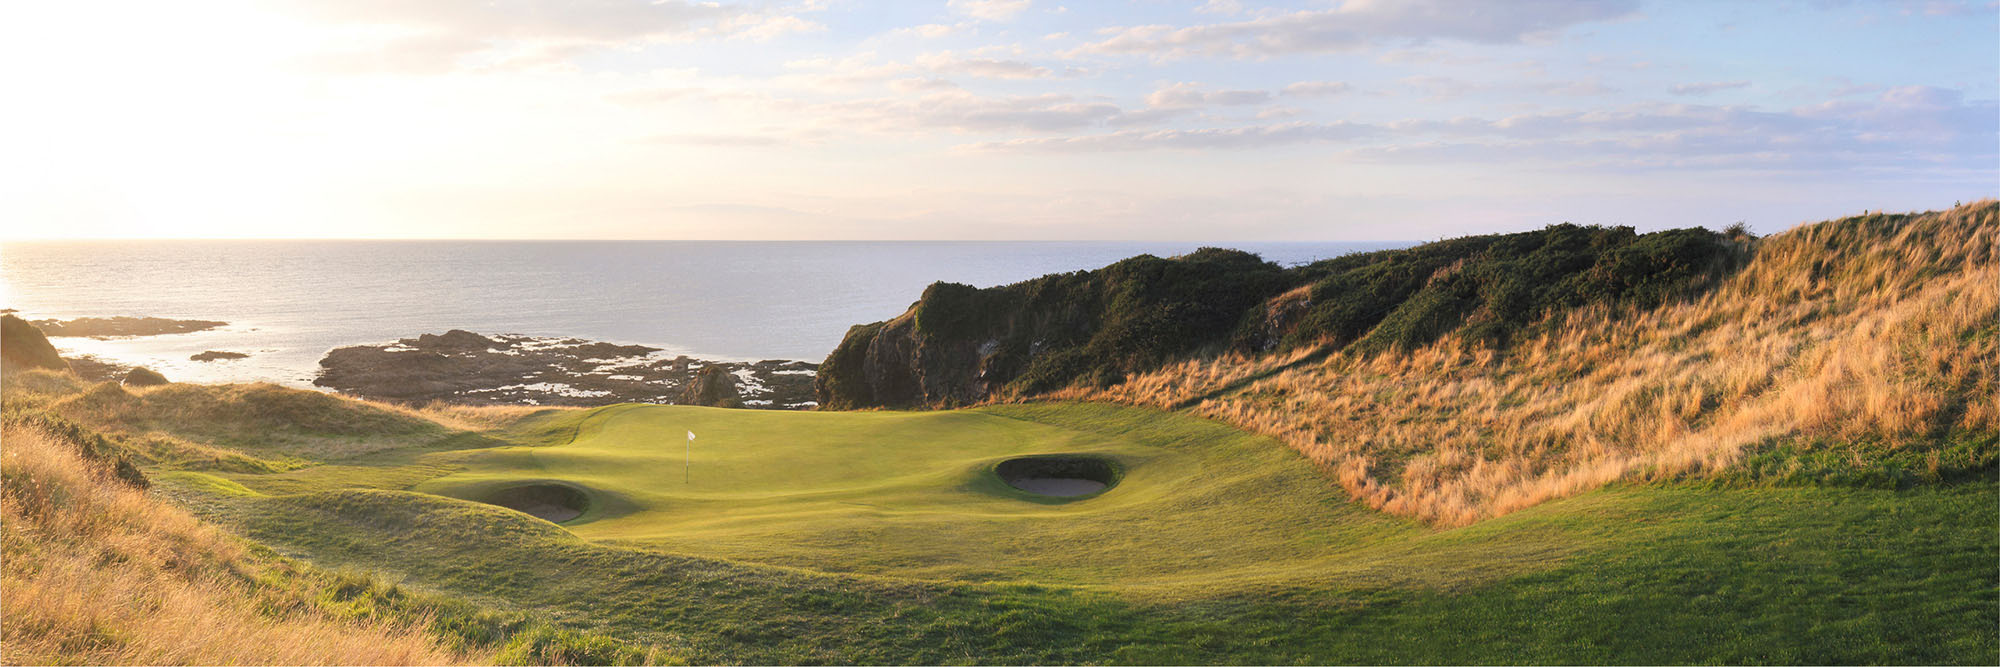 Golf Course Image - Turnberry Kintyre No. 8